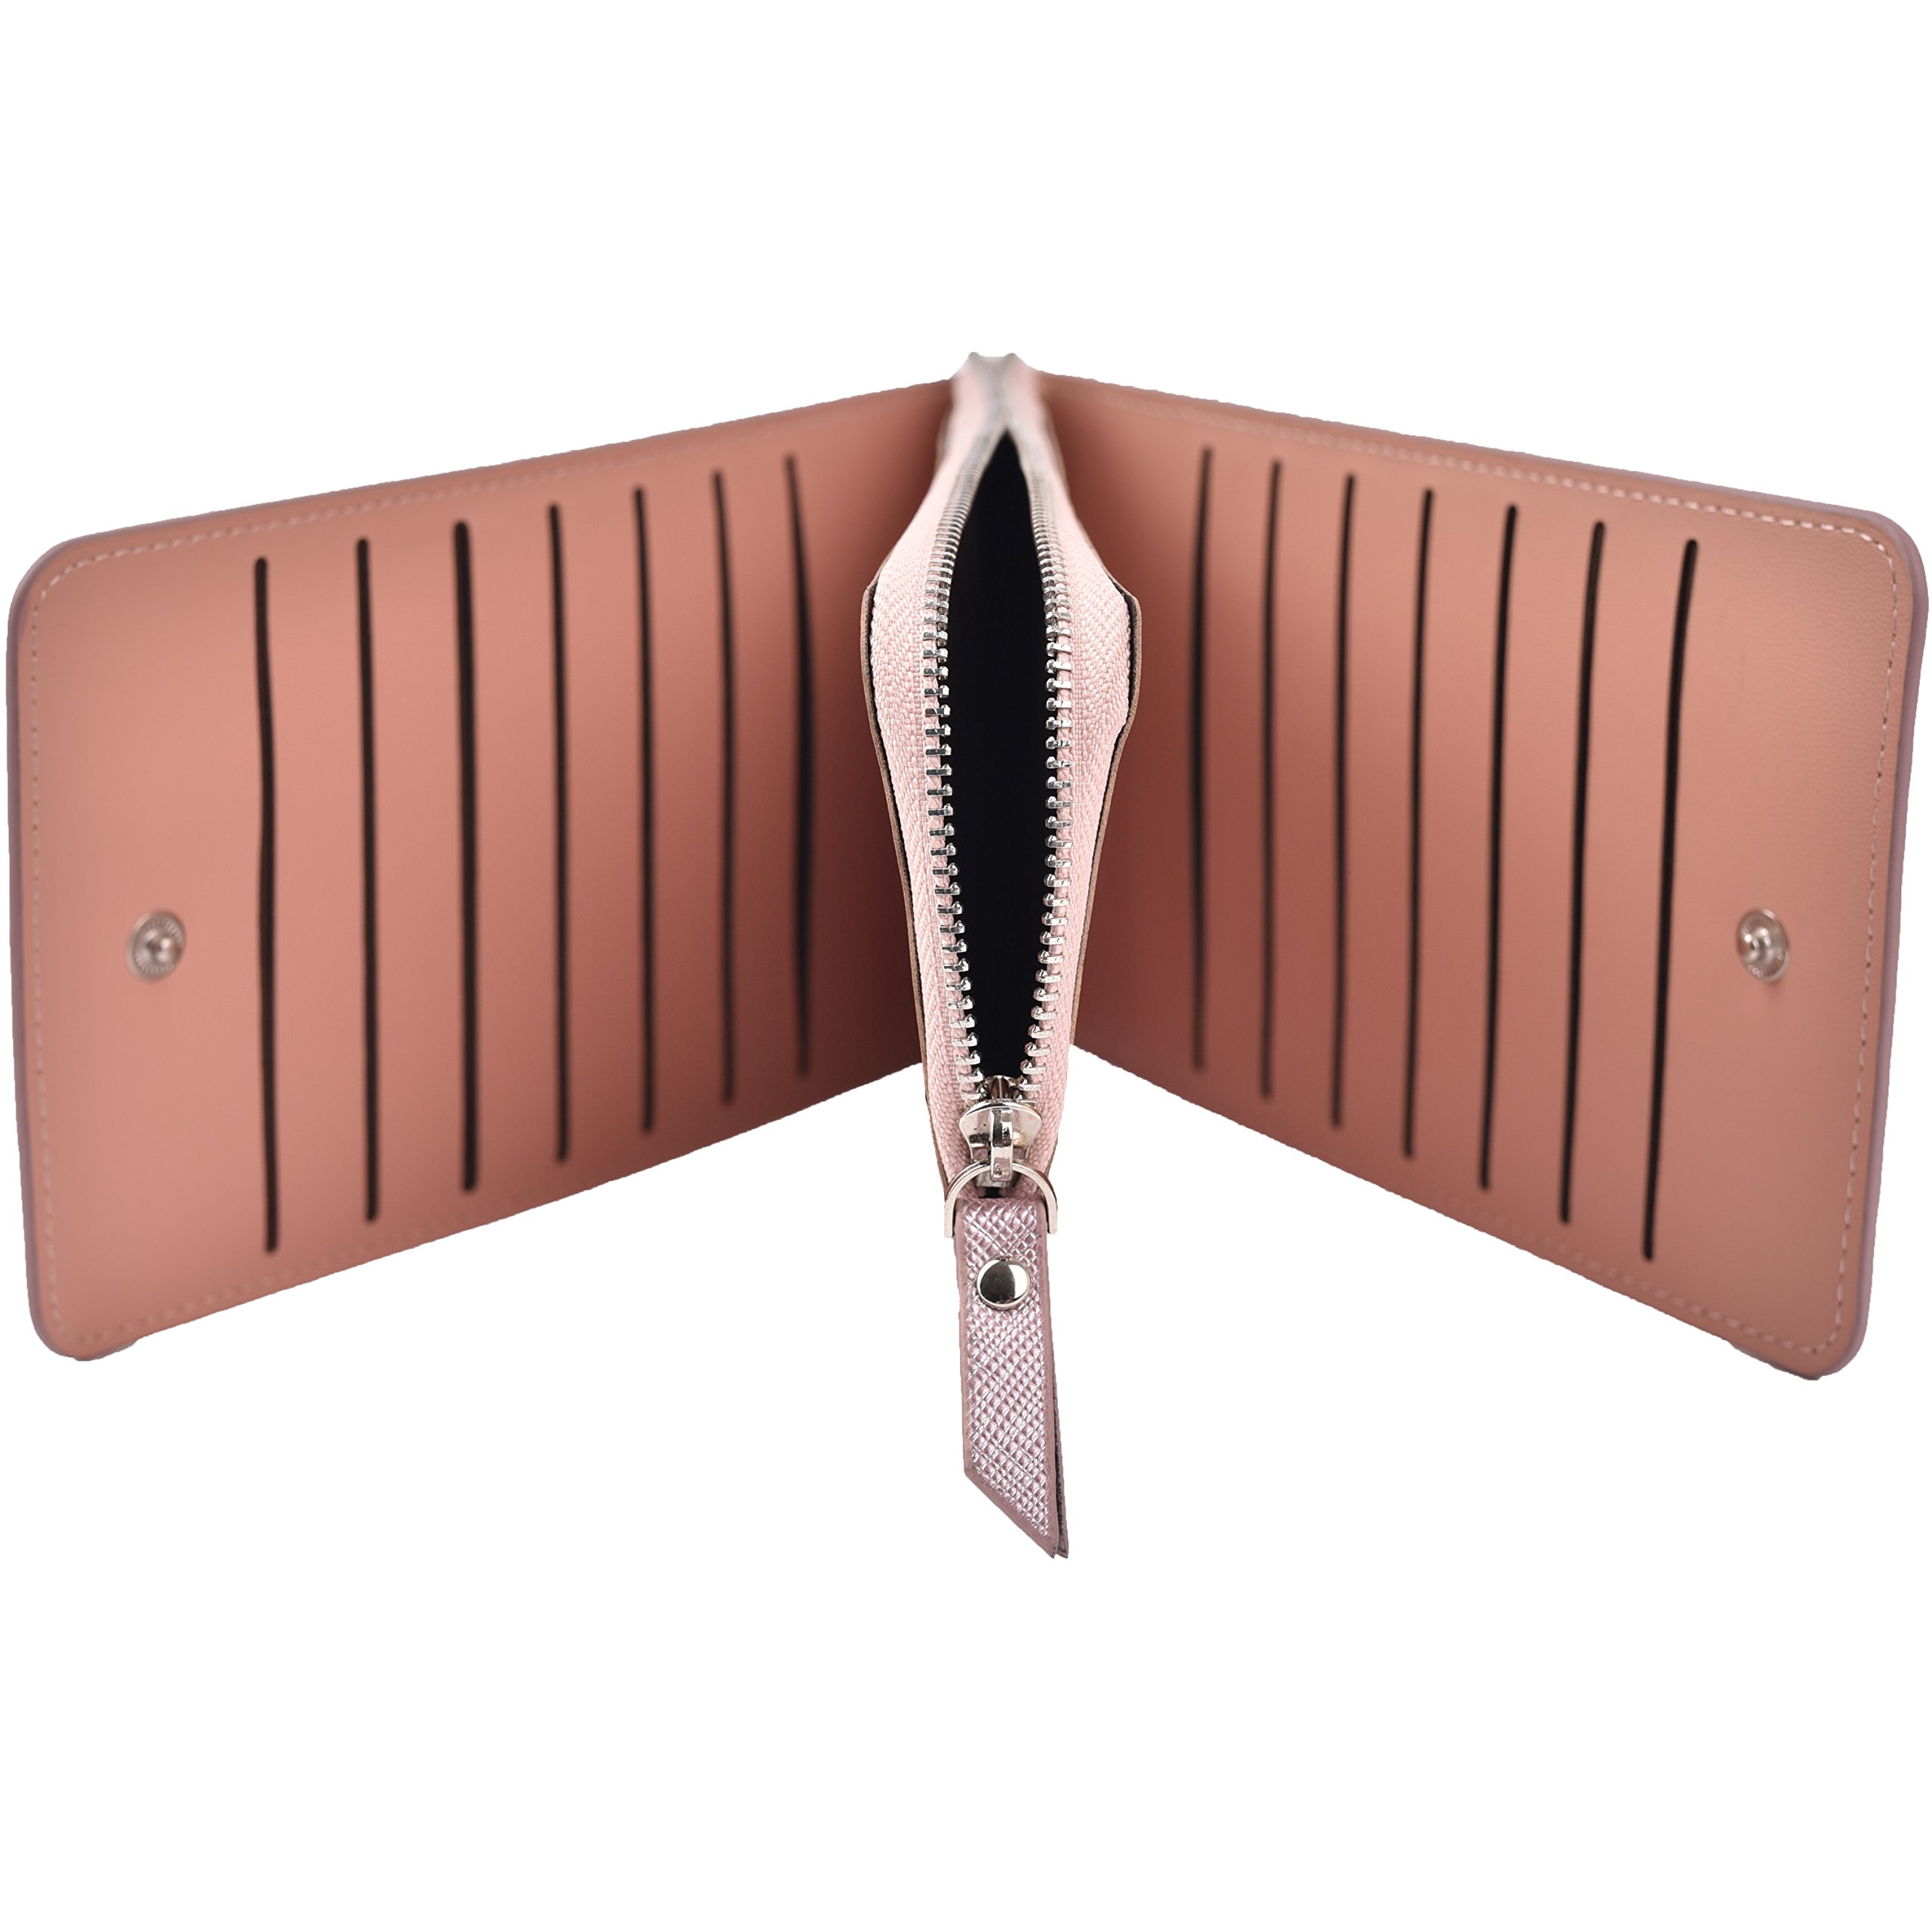 Women's Leather Card Case Holder Wallet Rfid Trifold Thin Zipper Wallet Purse (Light Purple) by Yuhan Pretty (Image #4)